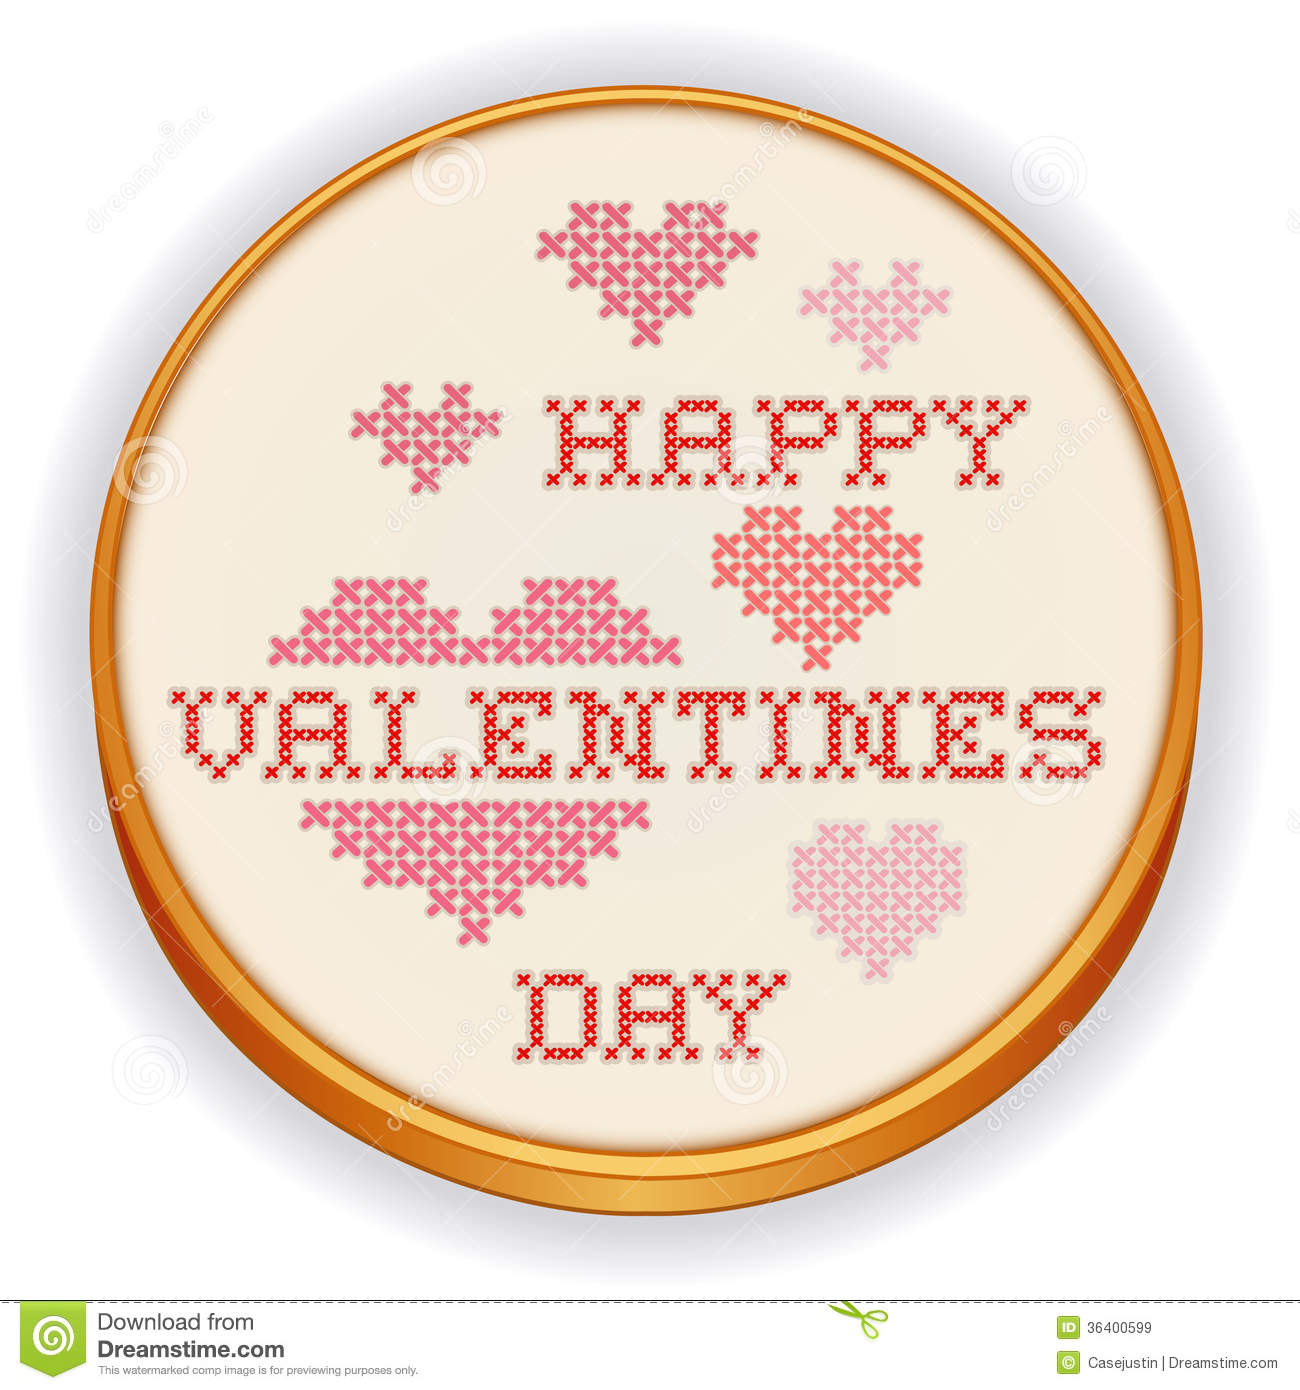 Happy Valentines Day Cross Stitch Embroidery Royalty Free Stock Images